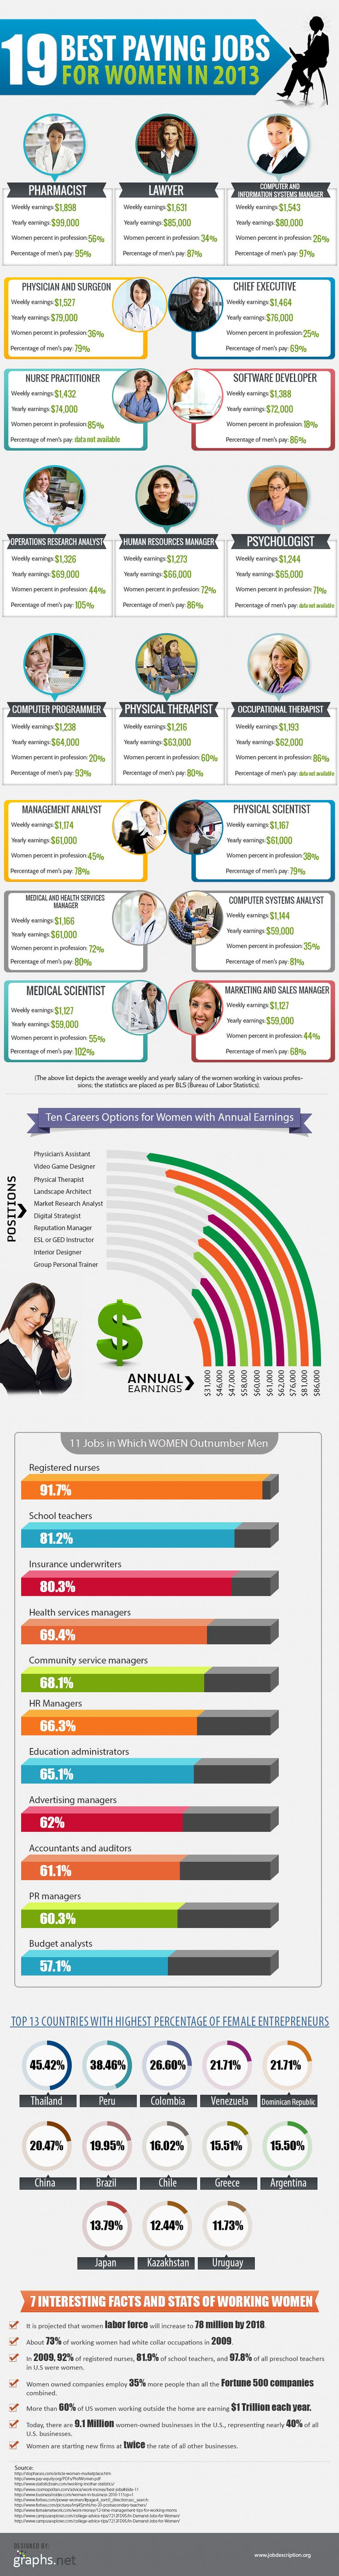 best ideas about jobs for students college 19 best paying jobs for women in 2013 infographics repinned by piktochart